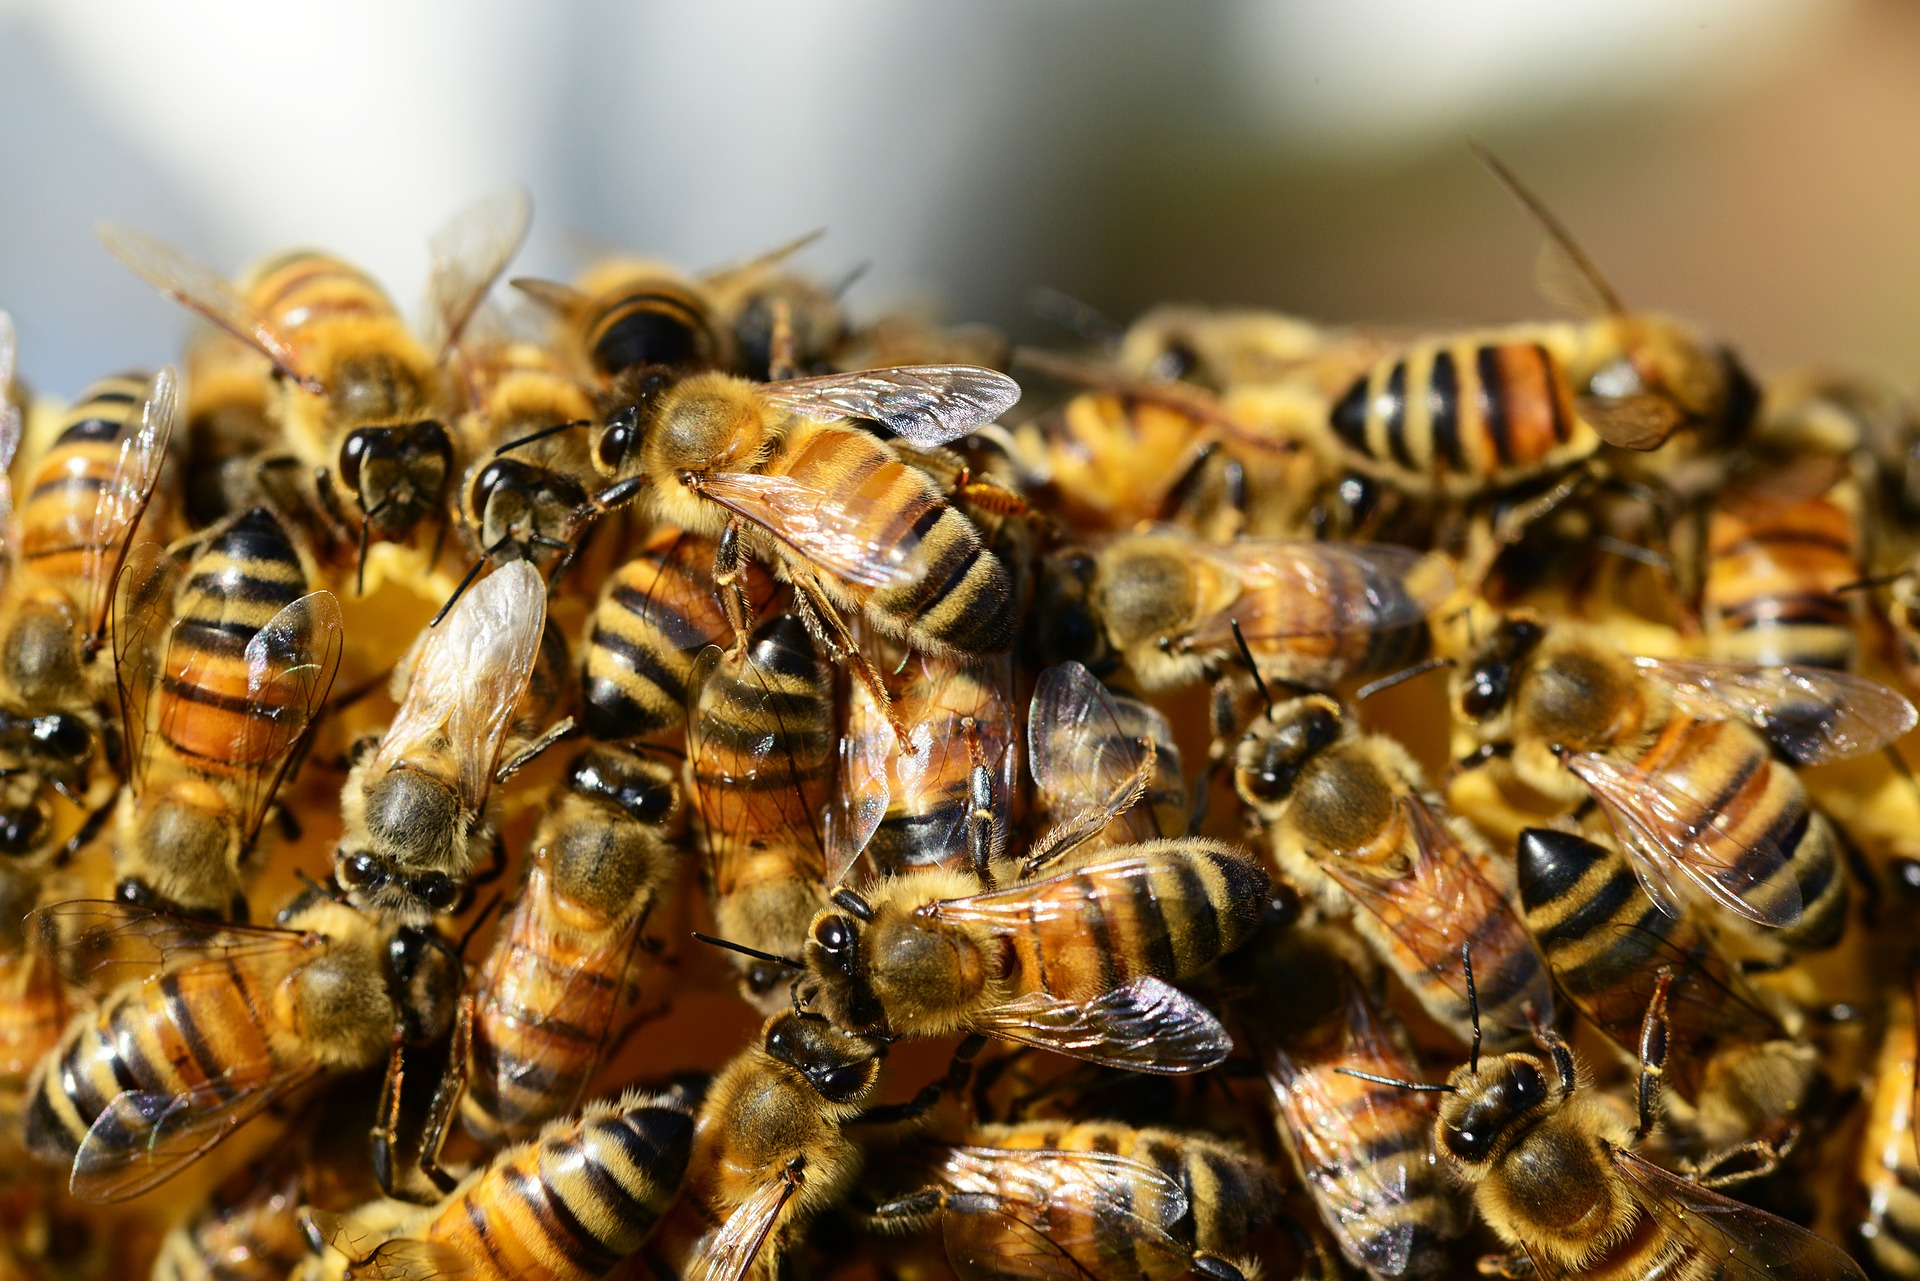 honey-bees-326334_1920.jpg